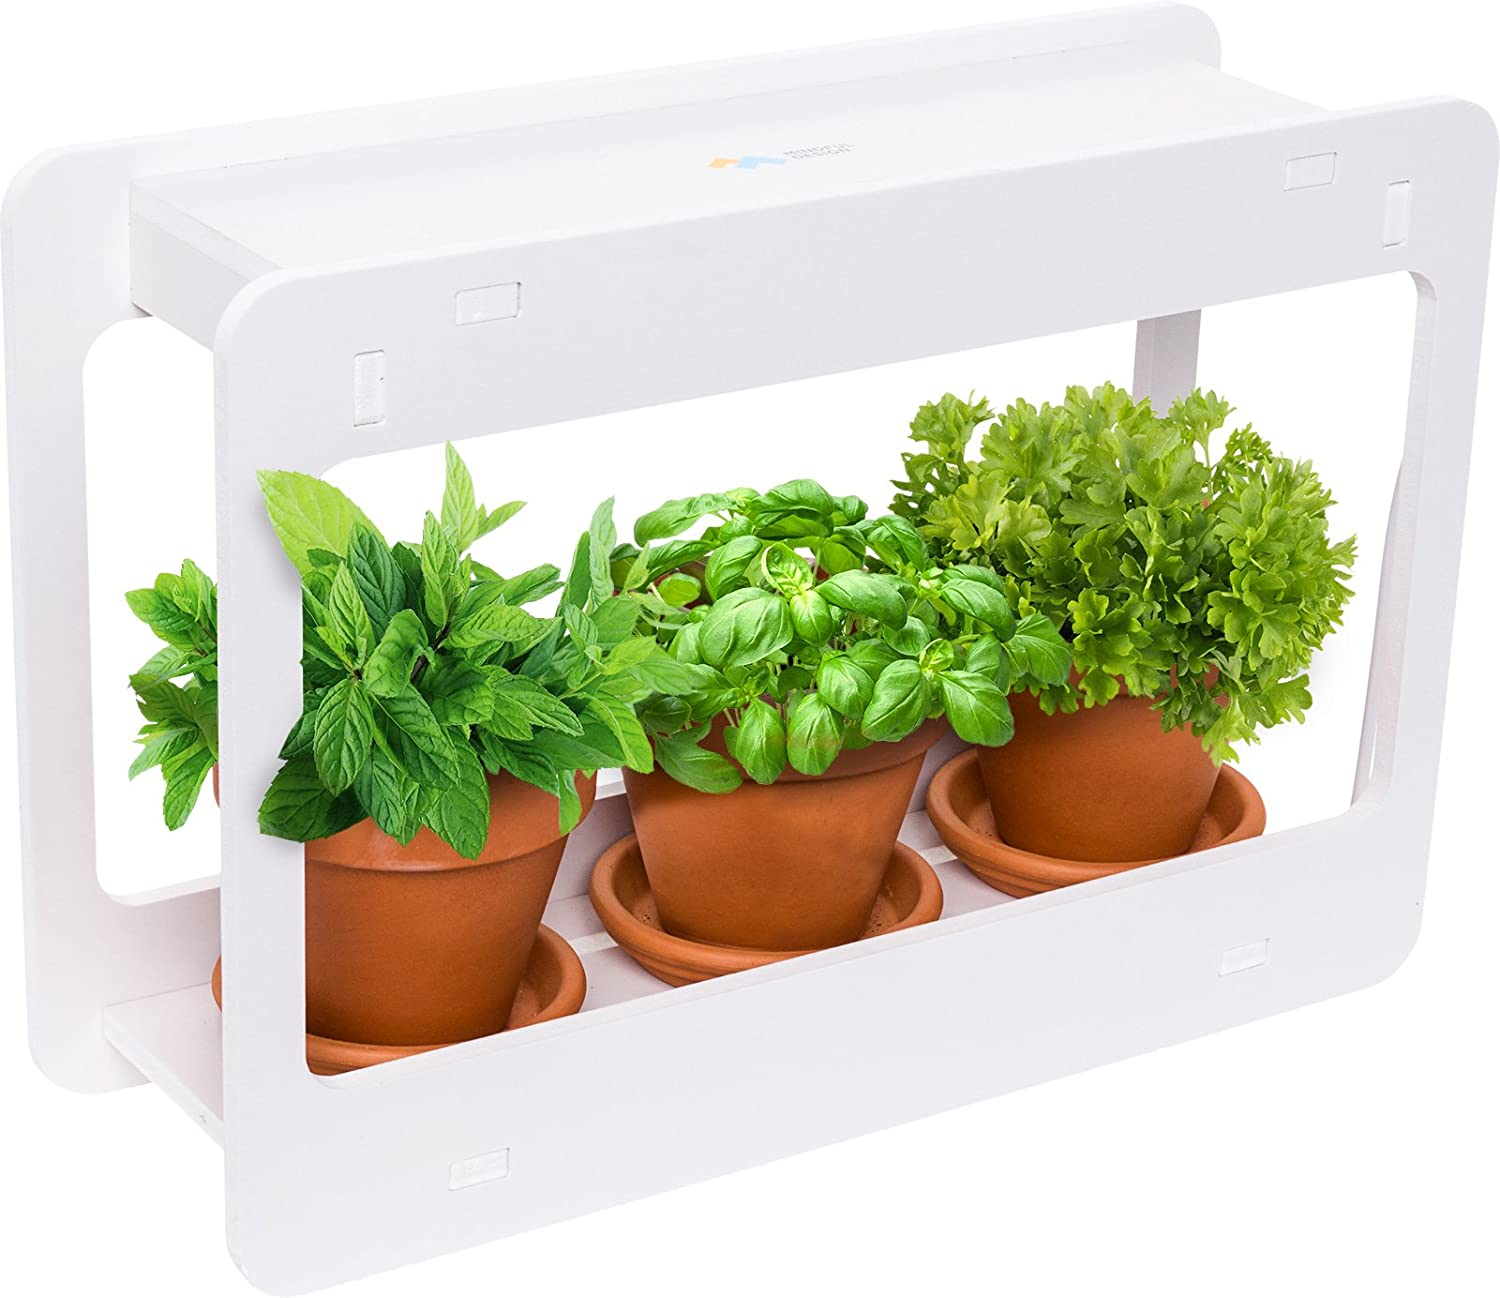 Amazon.com : Mindful Design LED Indoor Herb Garden - at Home Mini ...